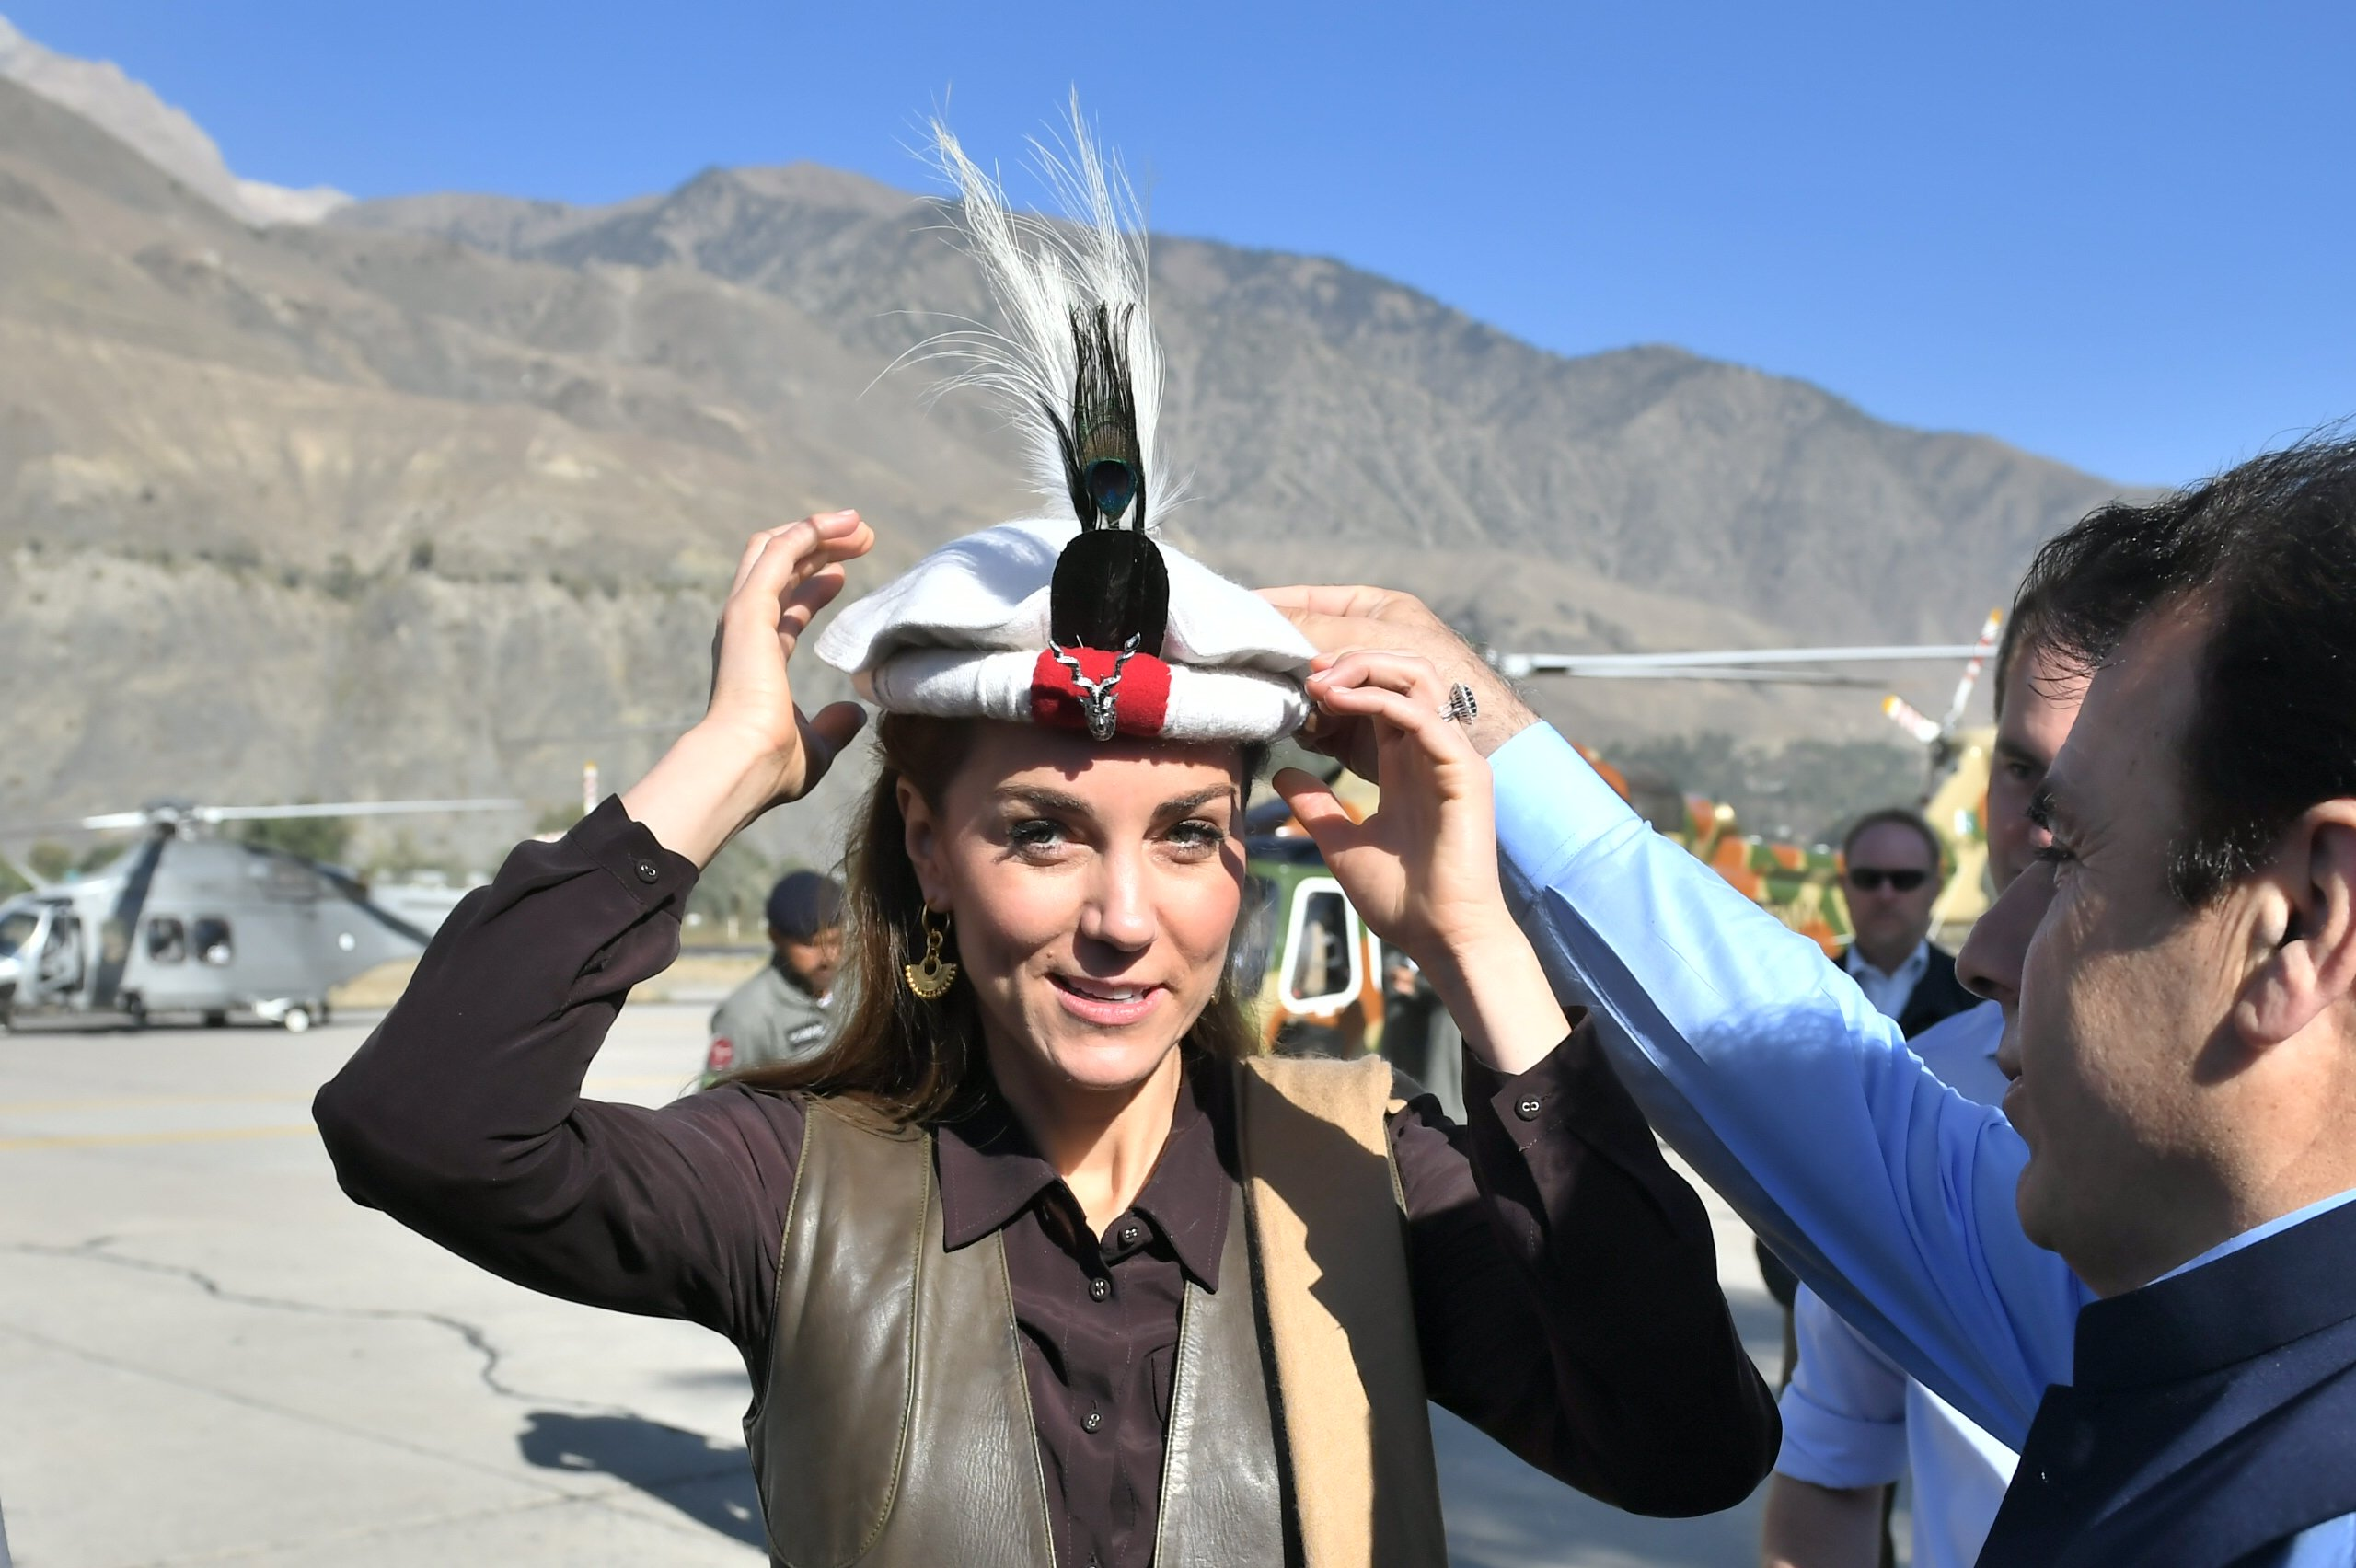 Prince William and Kate Middleton are welcomed as they arrive by helicopter on October 16, 2019, in Chitral, Pakistan. | Source: Getty Images.